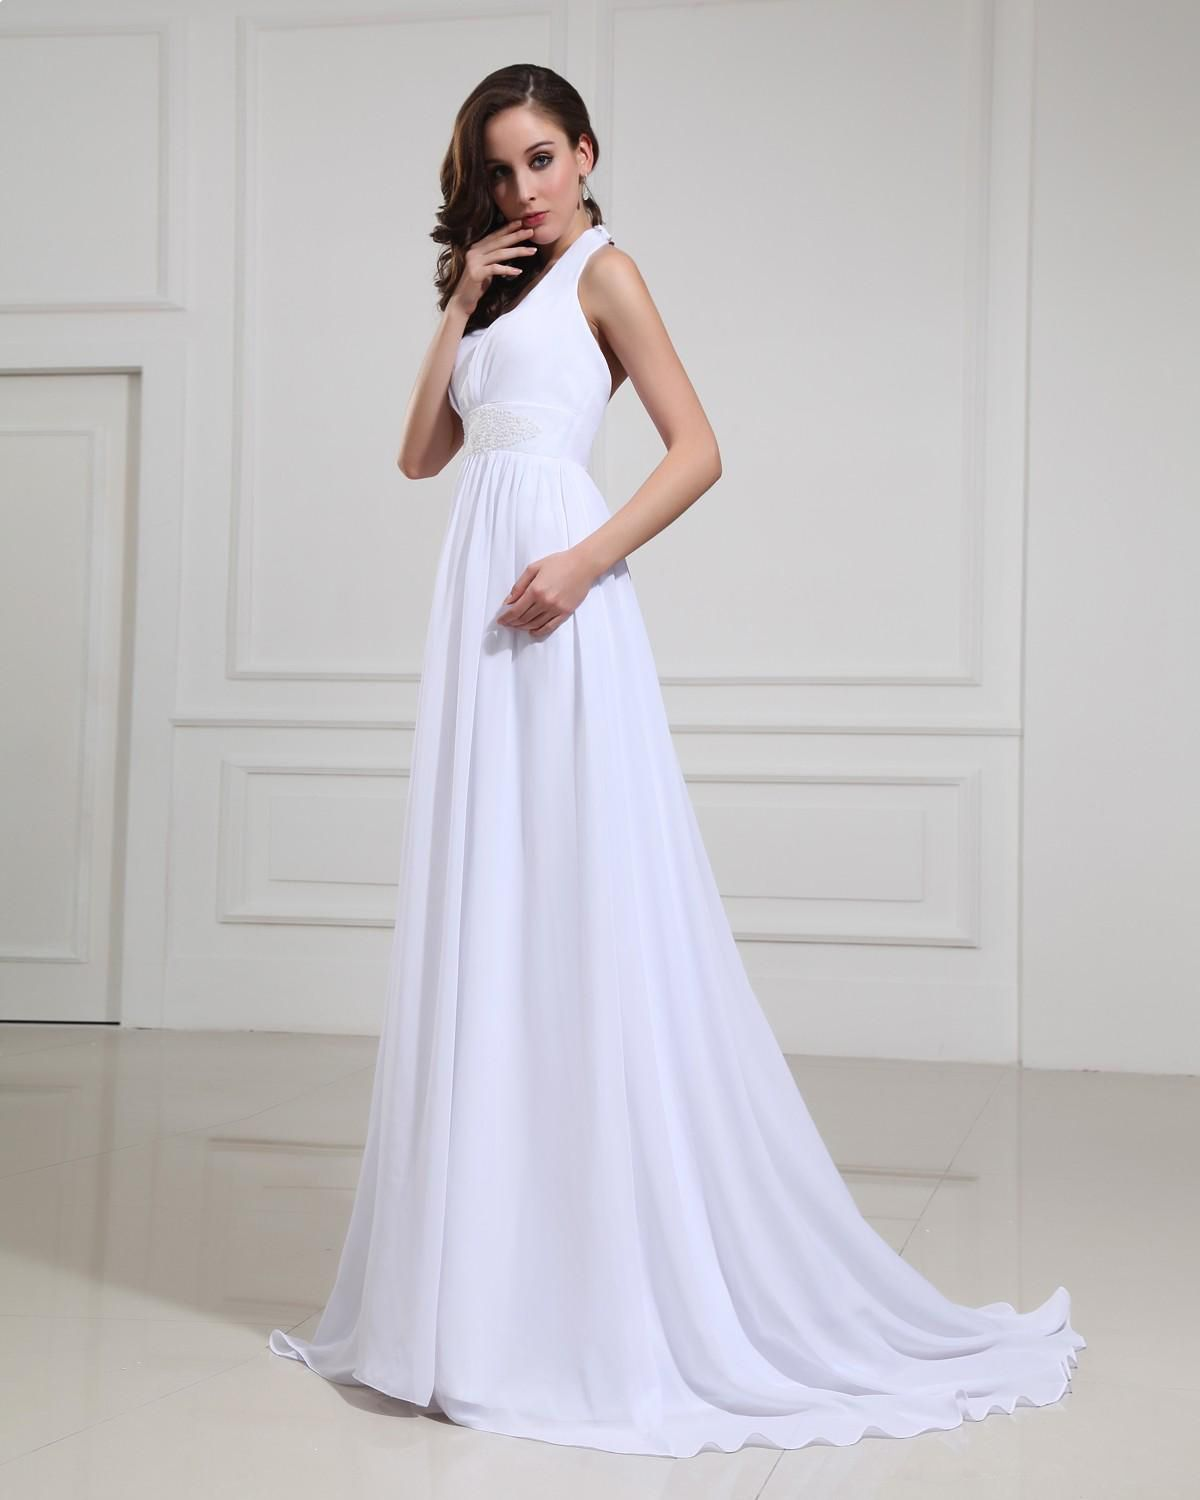 Chiffon halter vneck empire bridal gown wedding dressstyle no